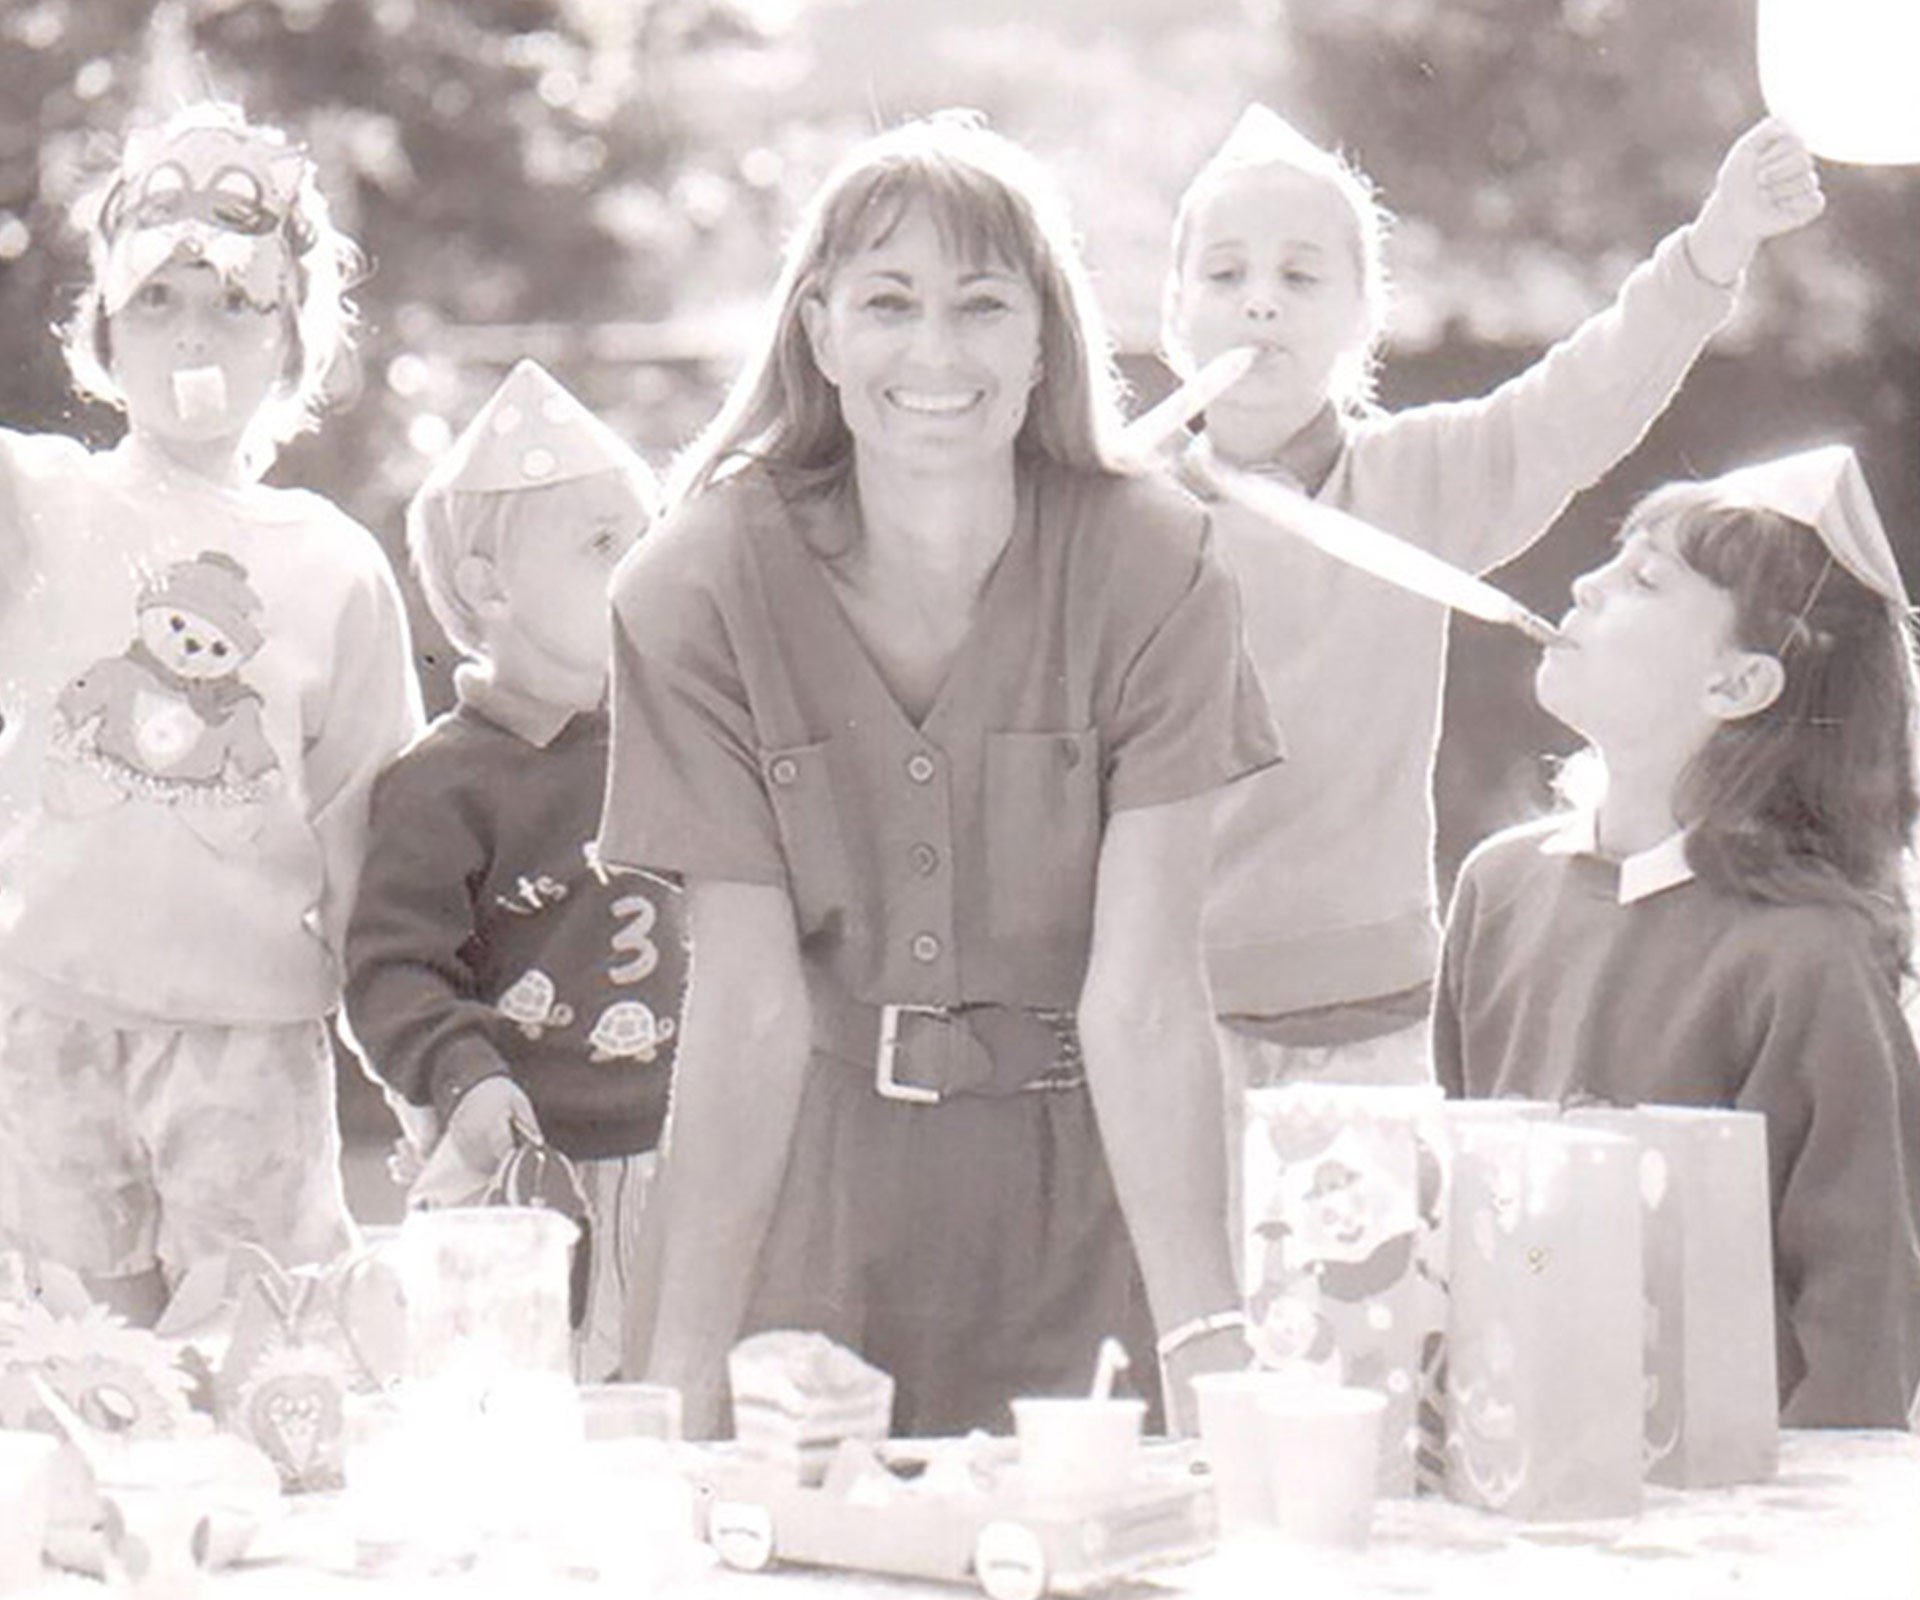 """To celebrate the 30th anniversary of her company, Party Pieces, Carole Middleton has shared a never-before-seen snap of her darling family in 1989, which includes a very festive looking Kate at age seven. *[(Via: Party Pices)](http://www.partypieces.co.uk/about-us